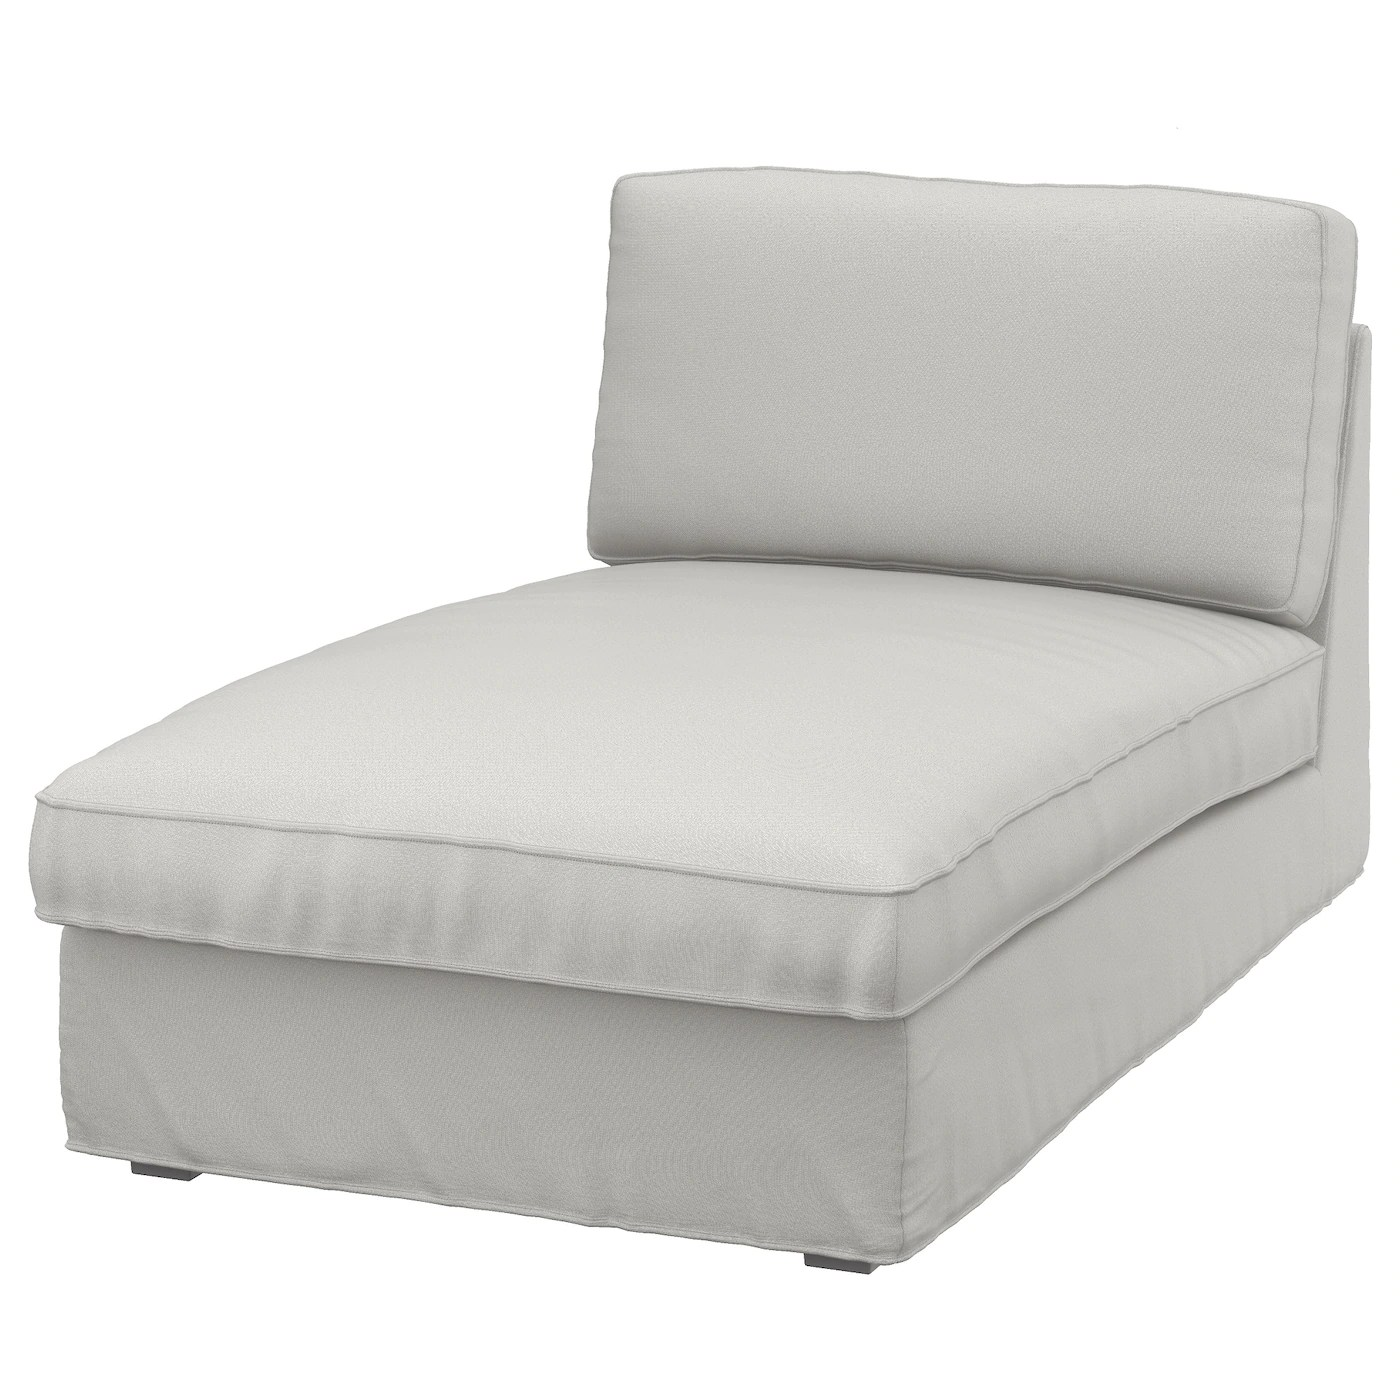 Chause Longue Kivik Chaise Longue Ramna Light Grey